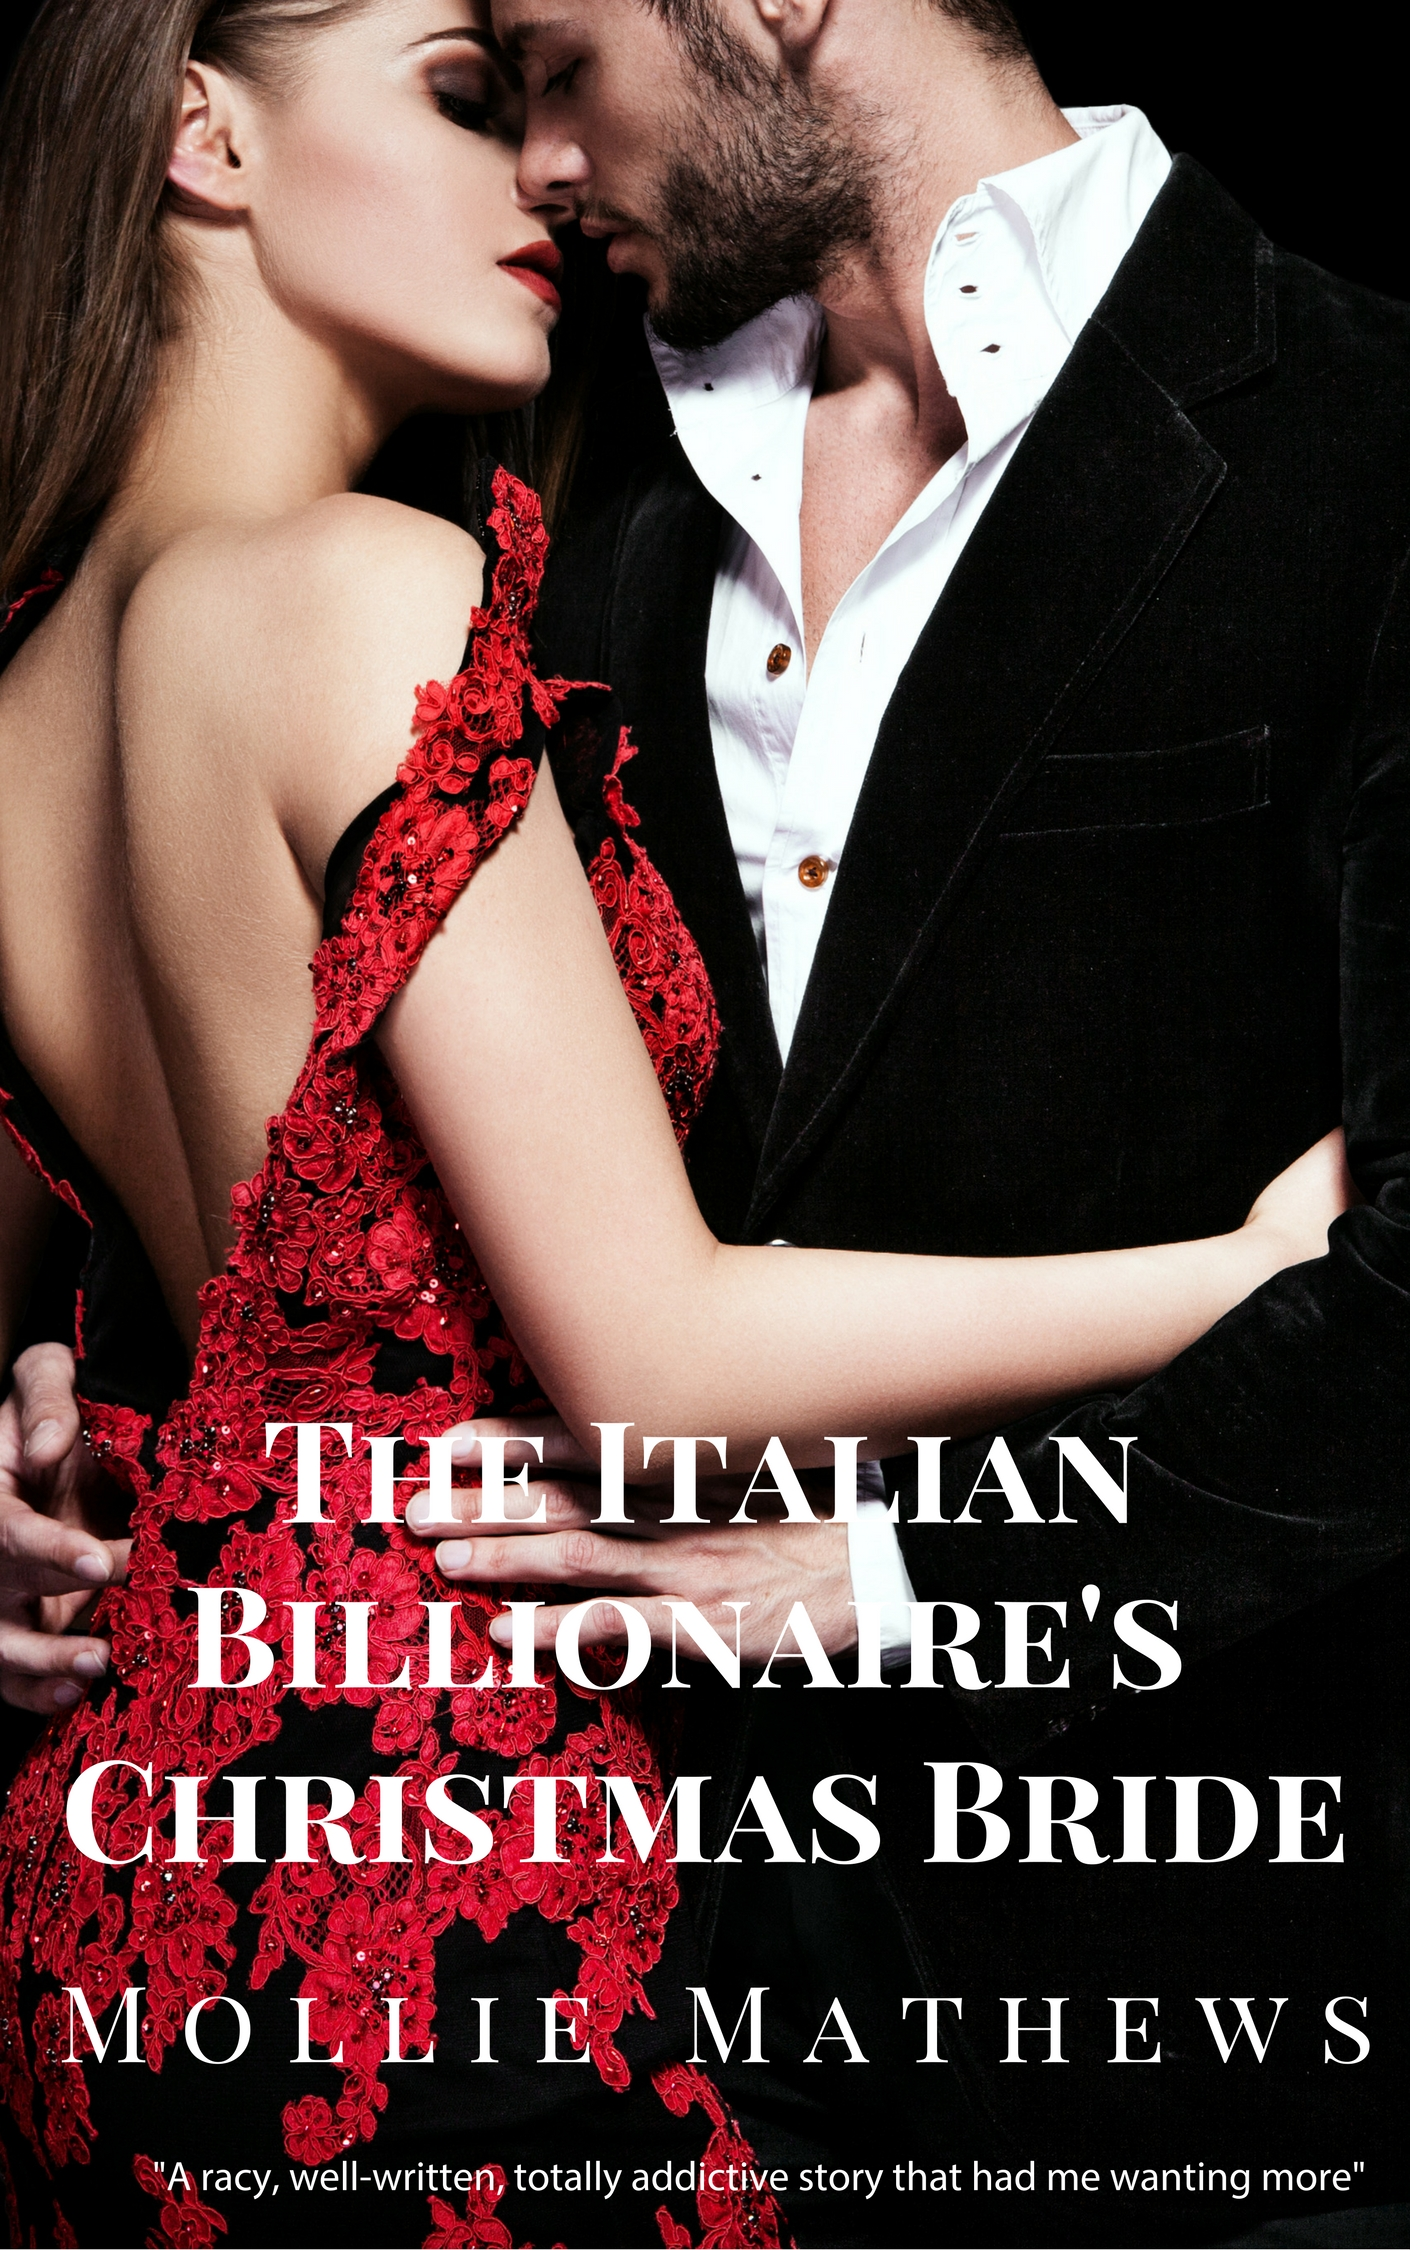 The Italian Billionaire's Christmas Bride